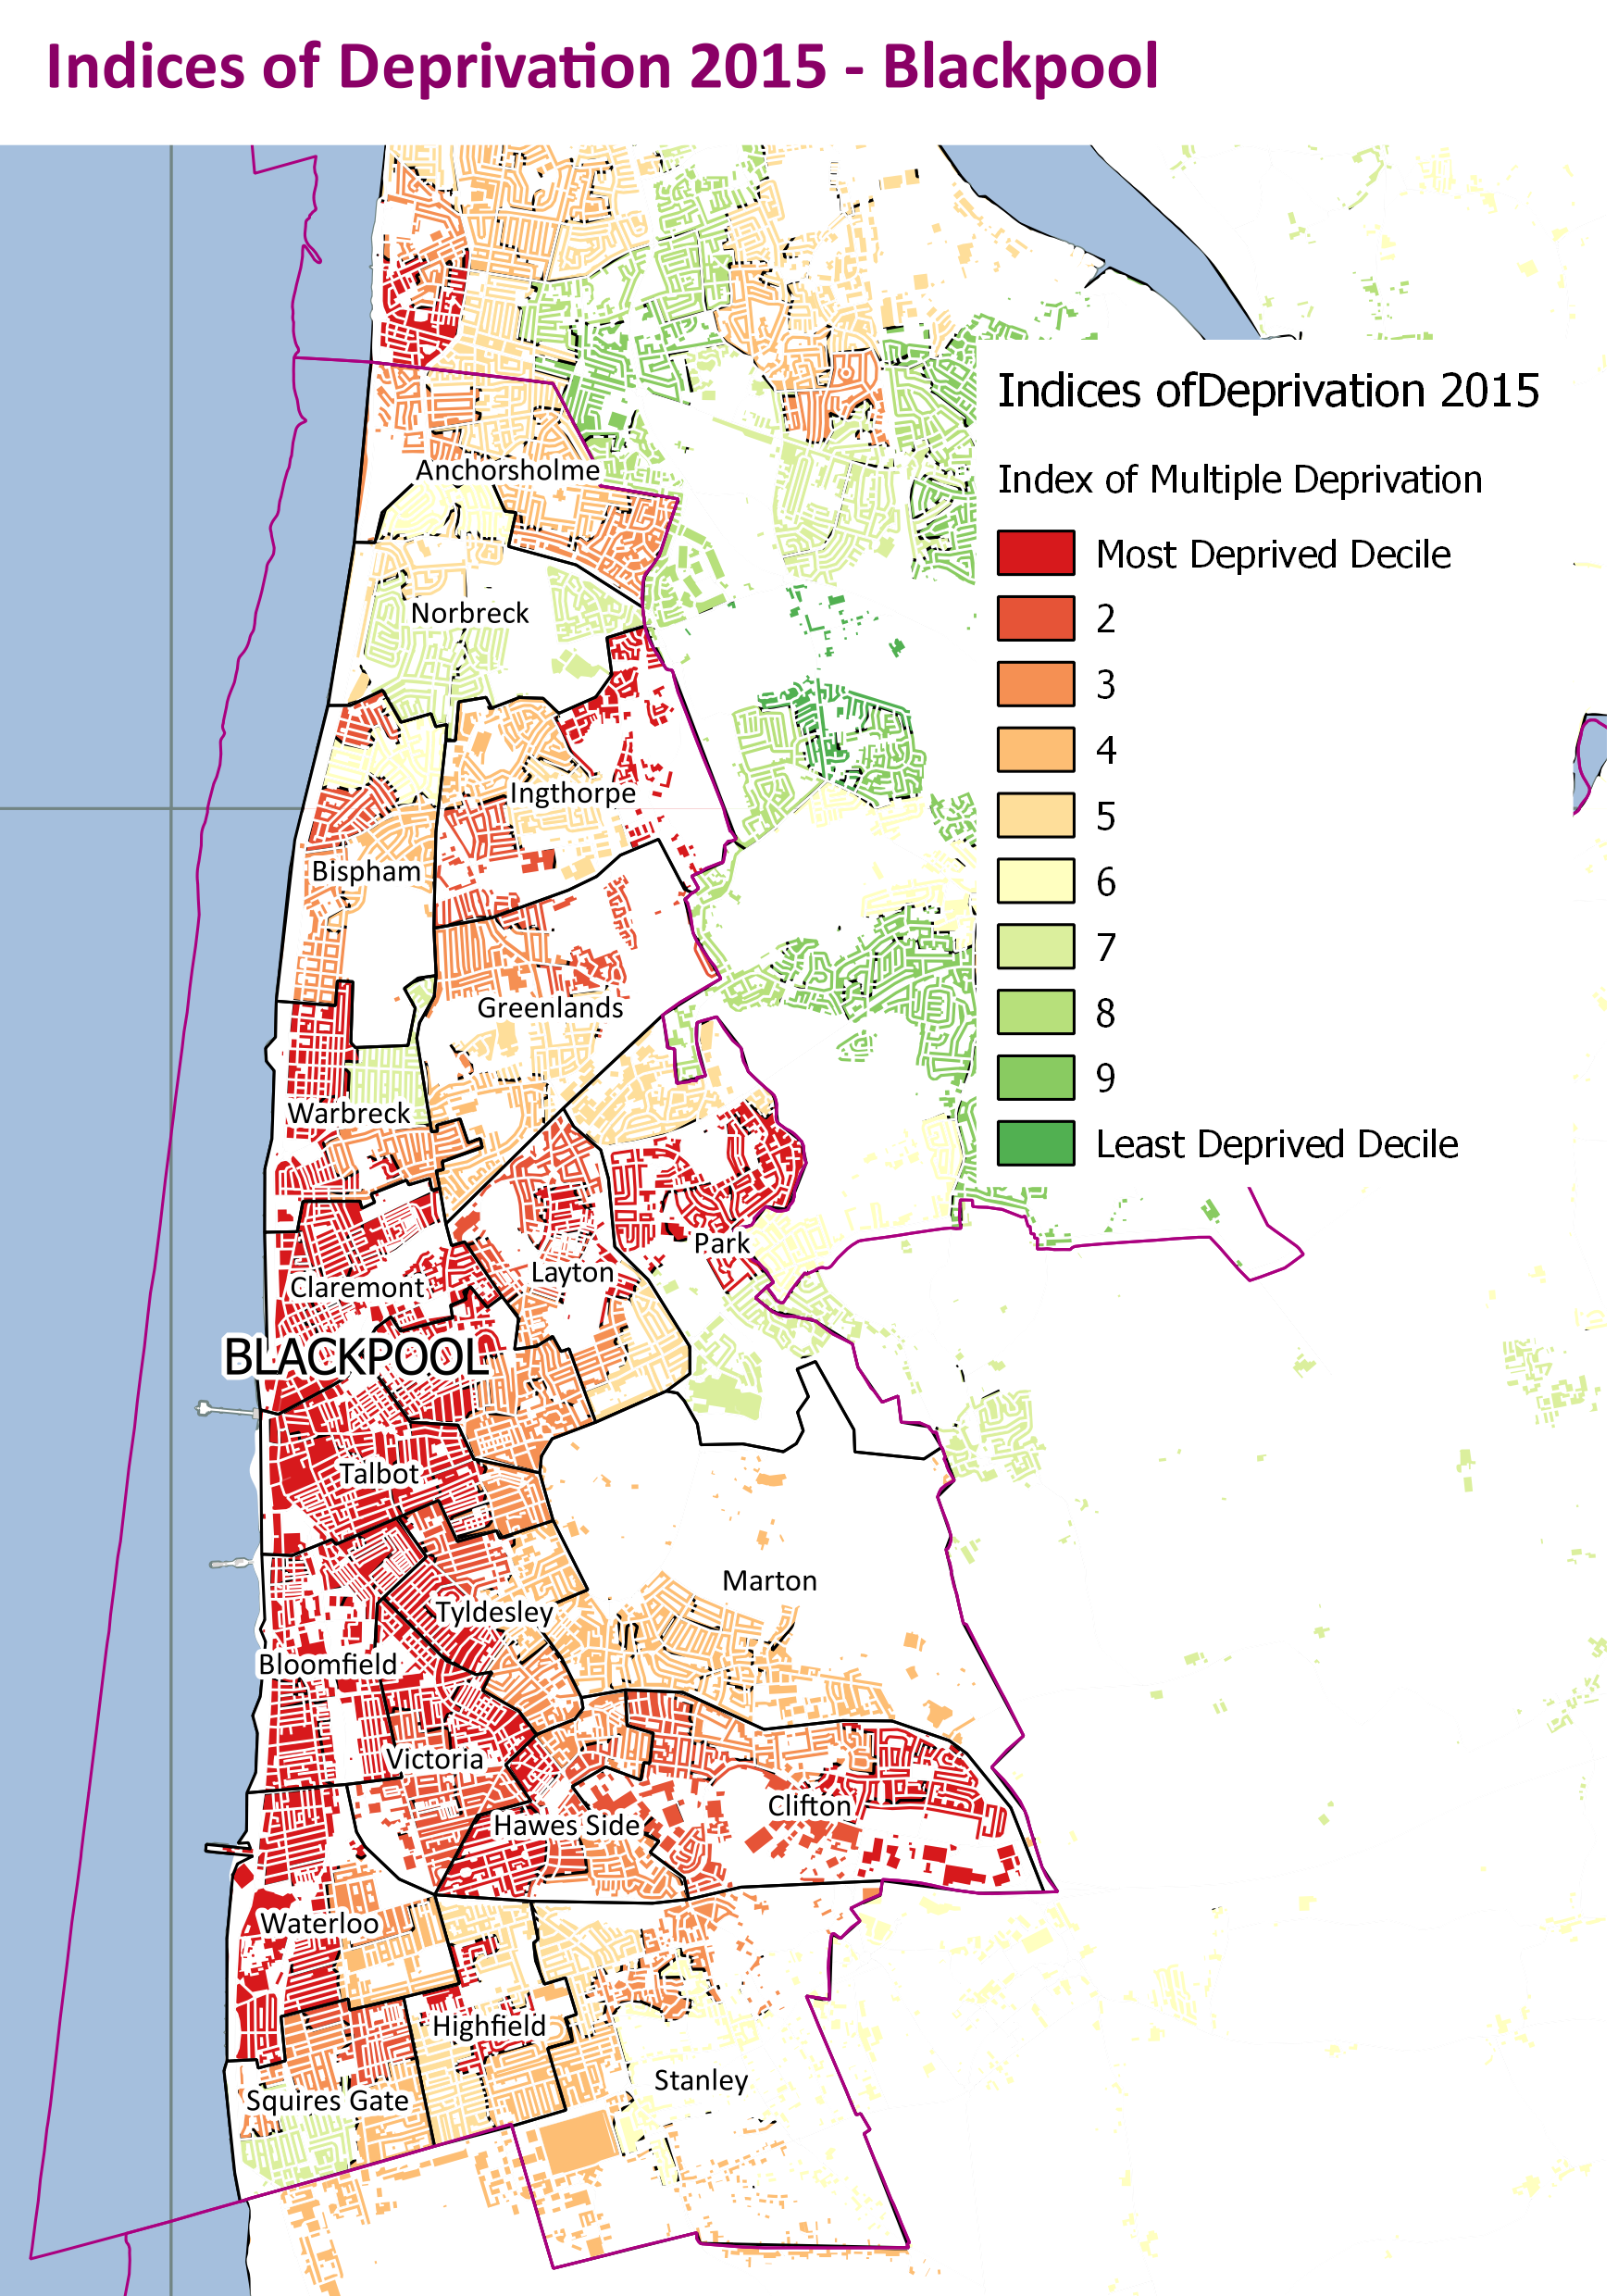 Indices of Deprivation 2015